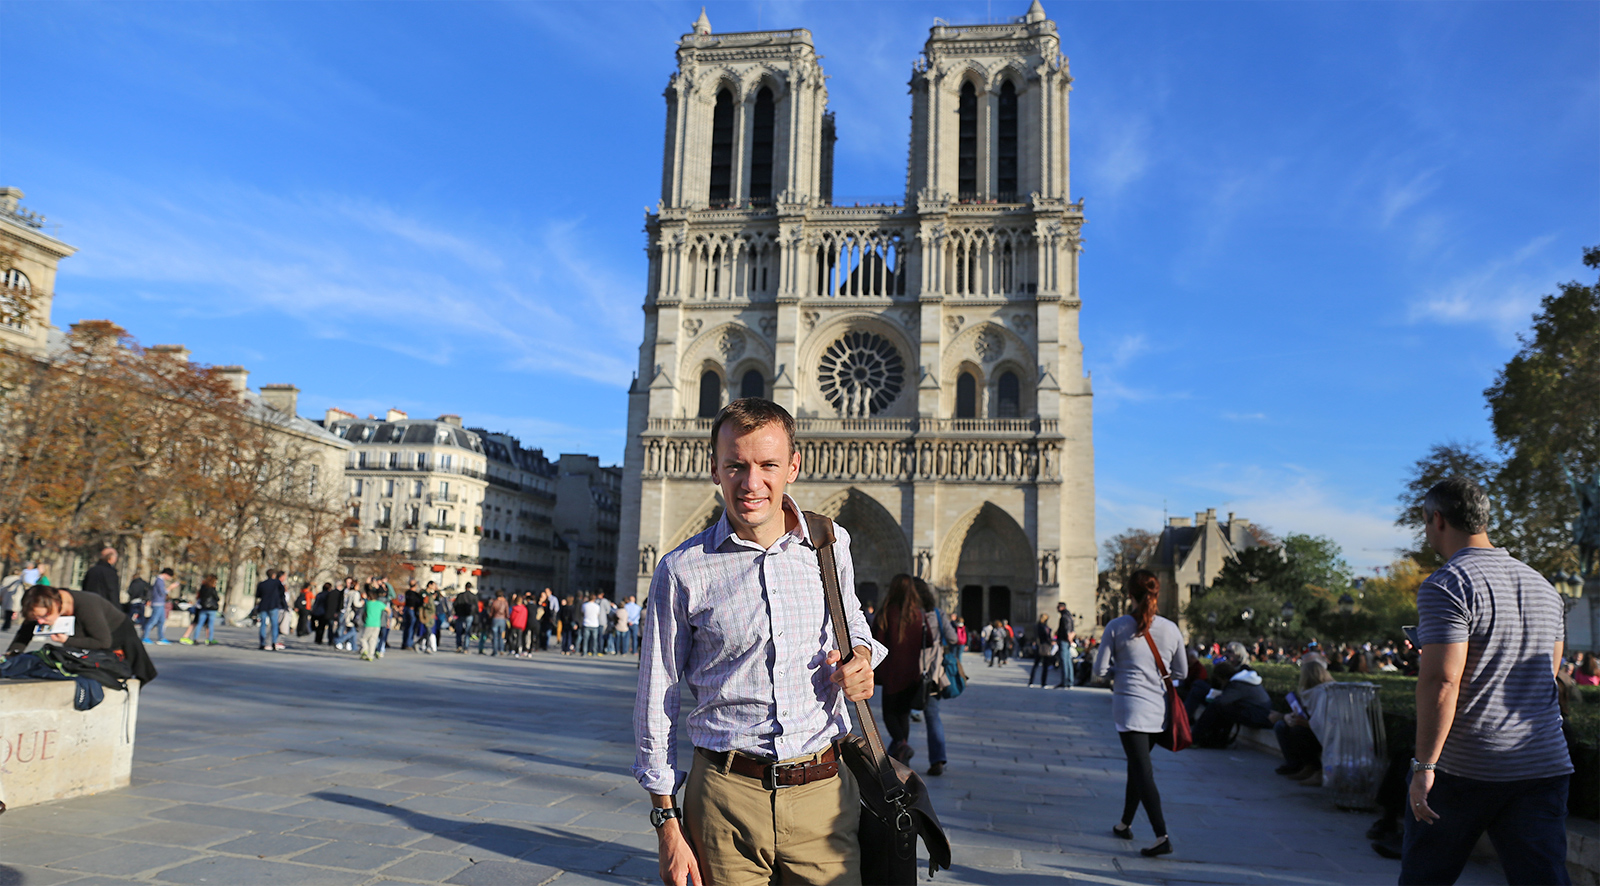 I'm front of Notre Dame in Paris during a trip there in October-- it was wonderful to get some time in Paris.